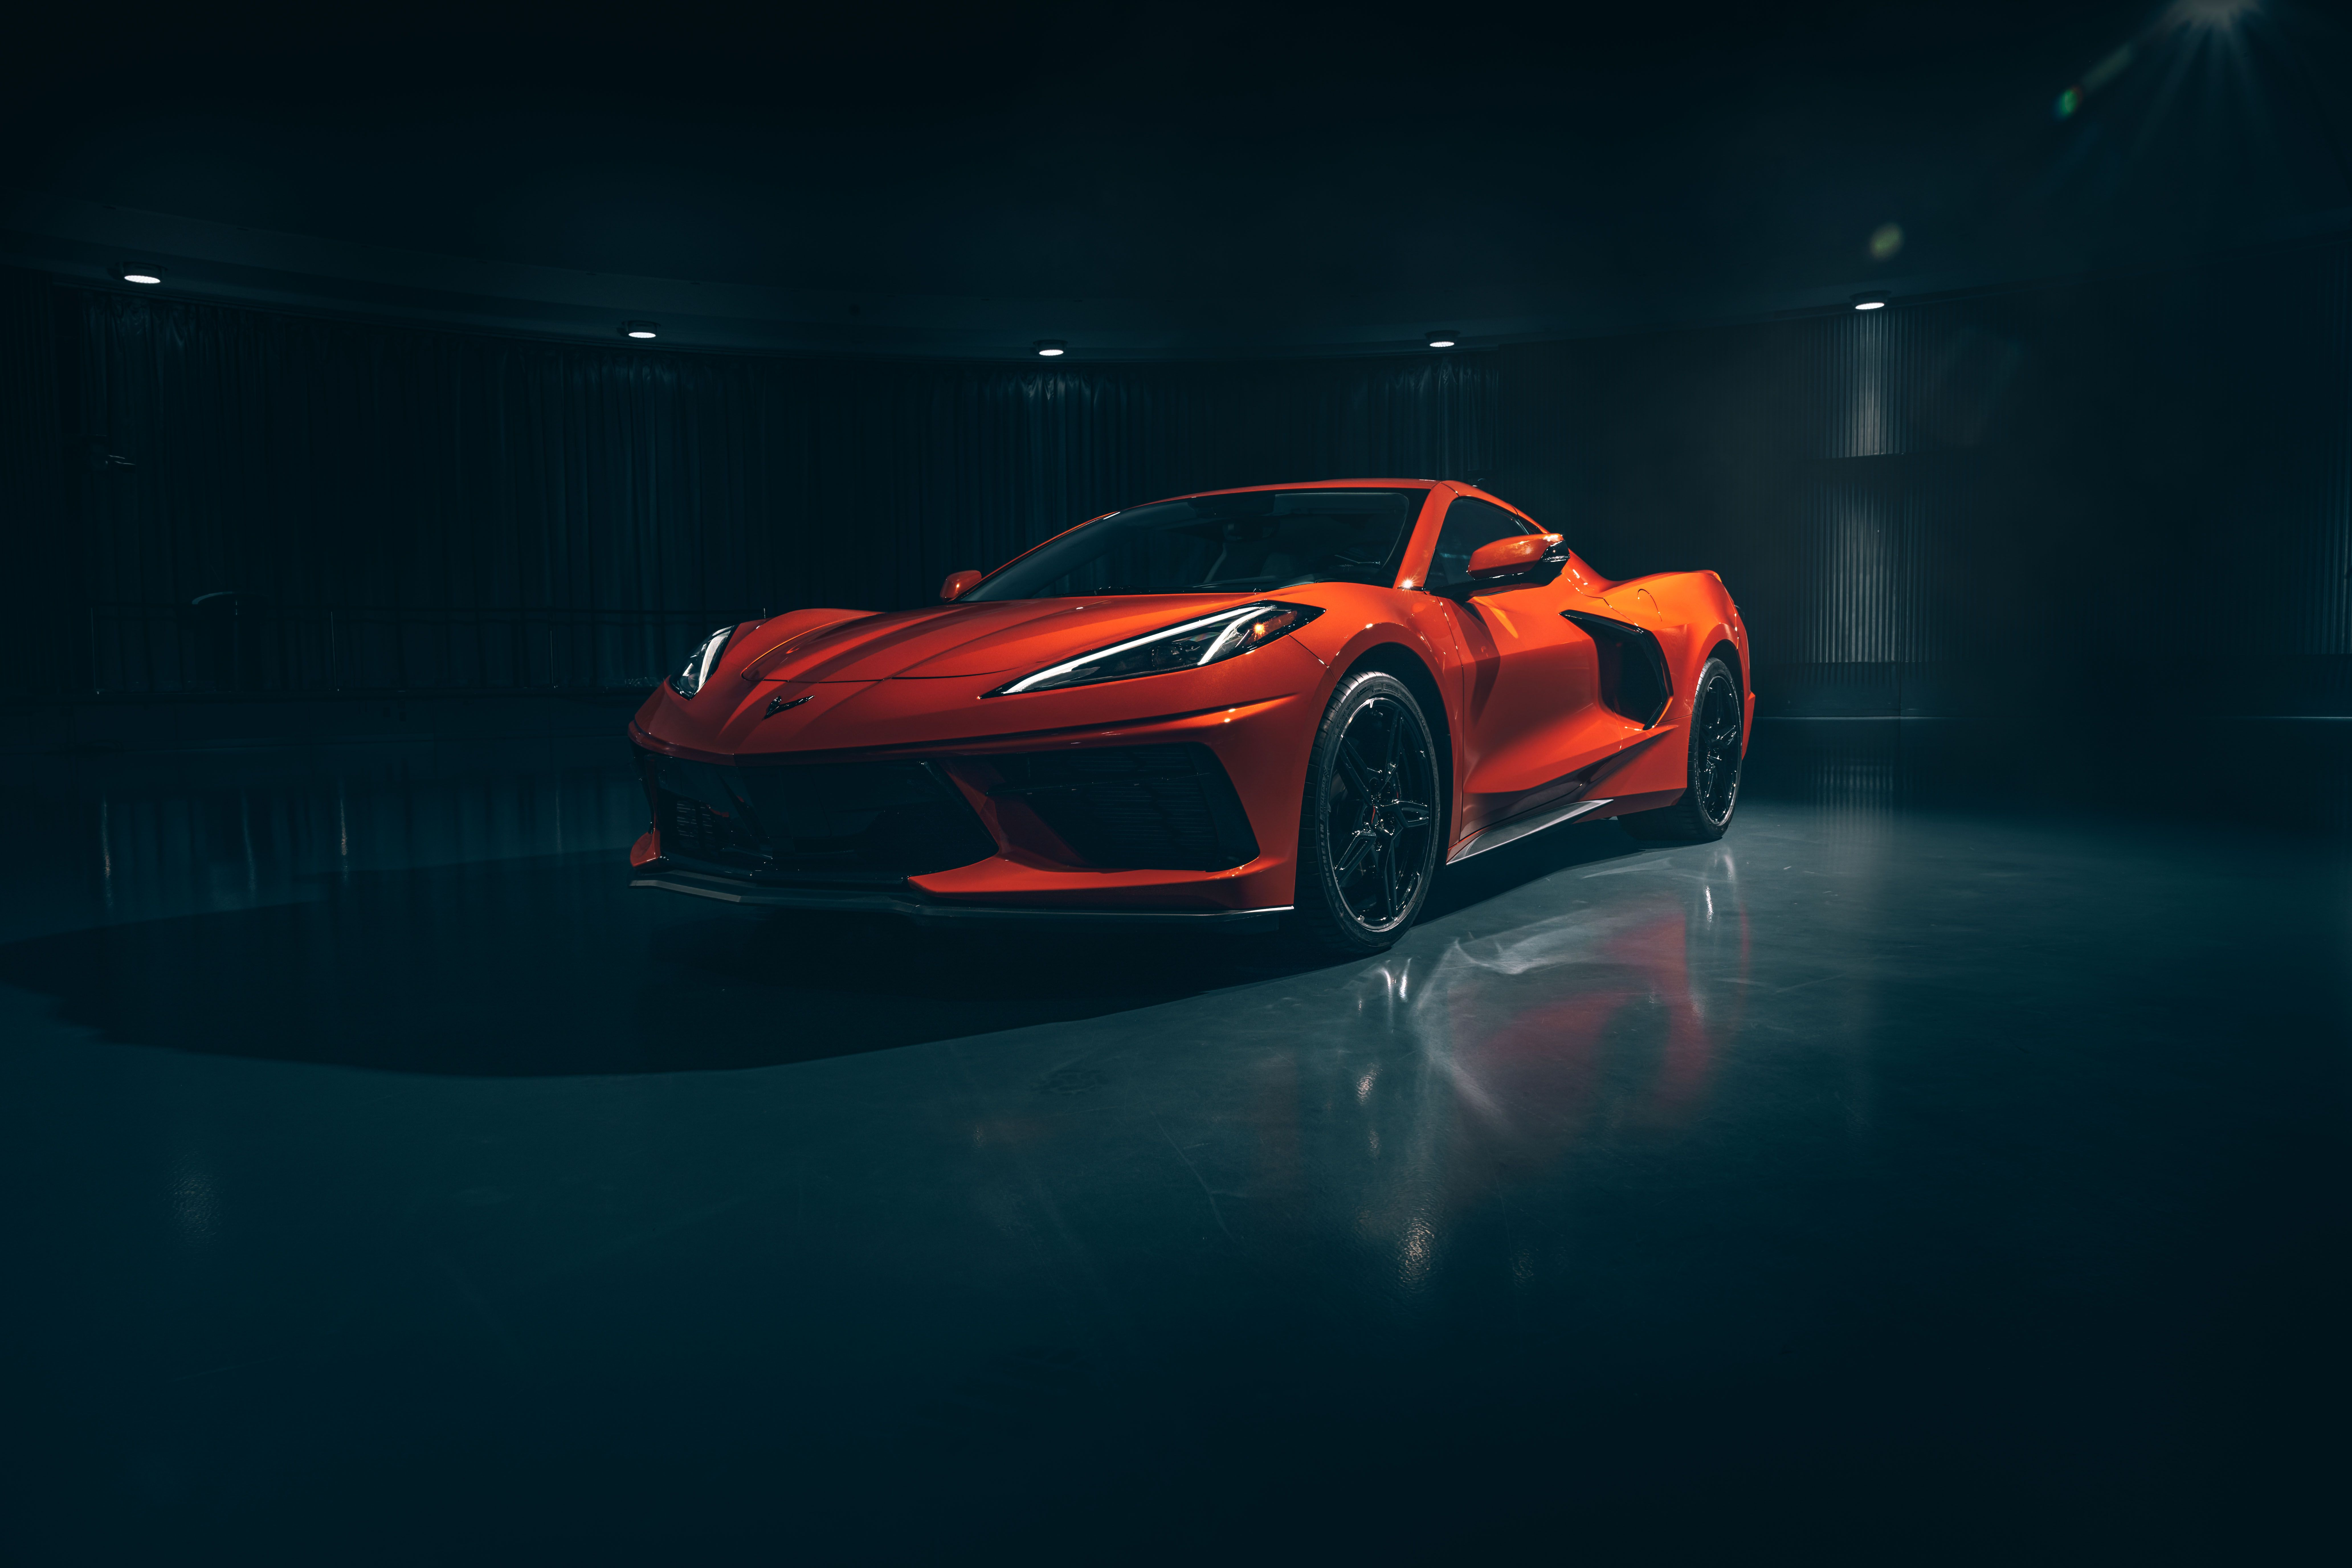 2020 Chevy Corvette Stingray C8, HD Cars, 4k Wallpapers, Images, Backgrounds, Photos and Pictures